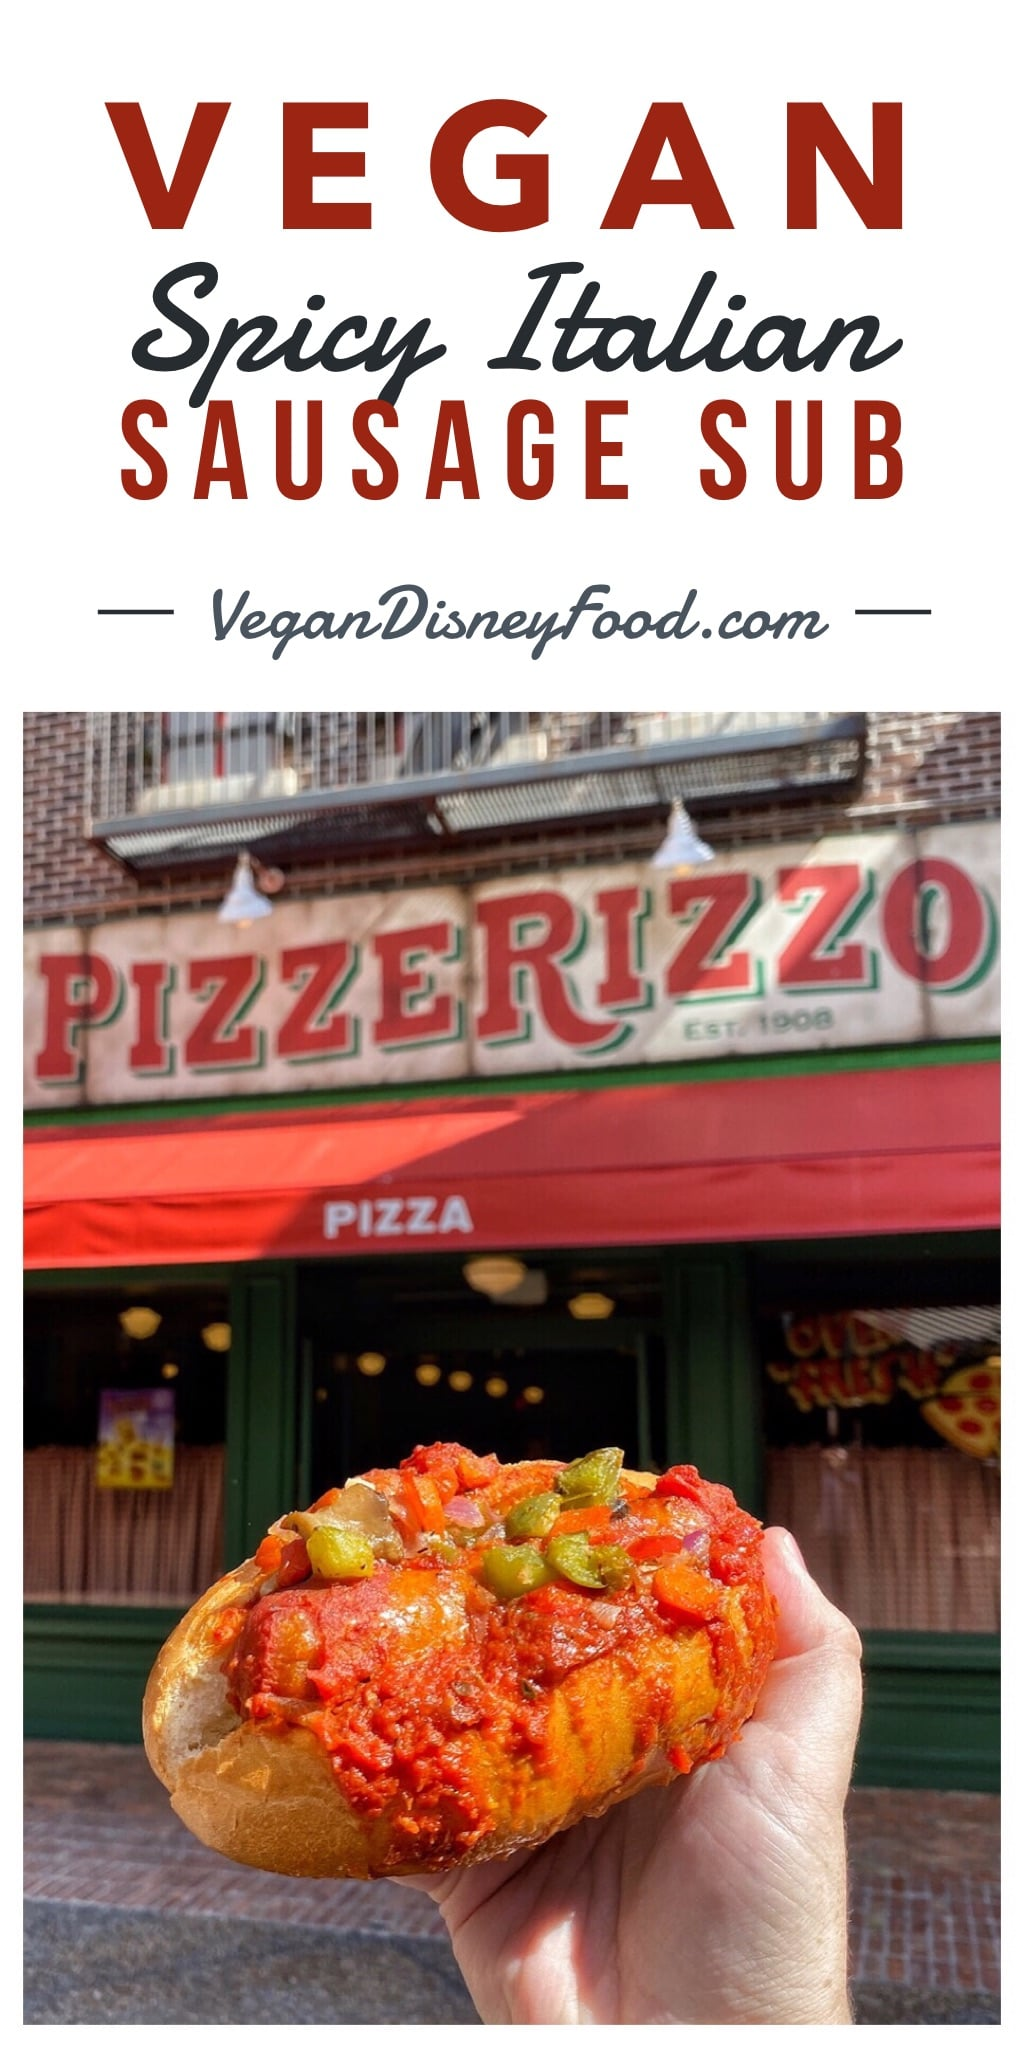 Vegan Spicy Italian Sausage Sub at PizzeRizzo in Disney's Hollywood Studios at Walt Disney World